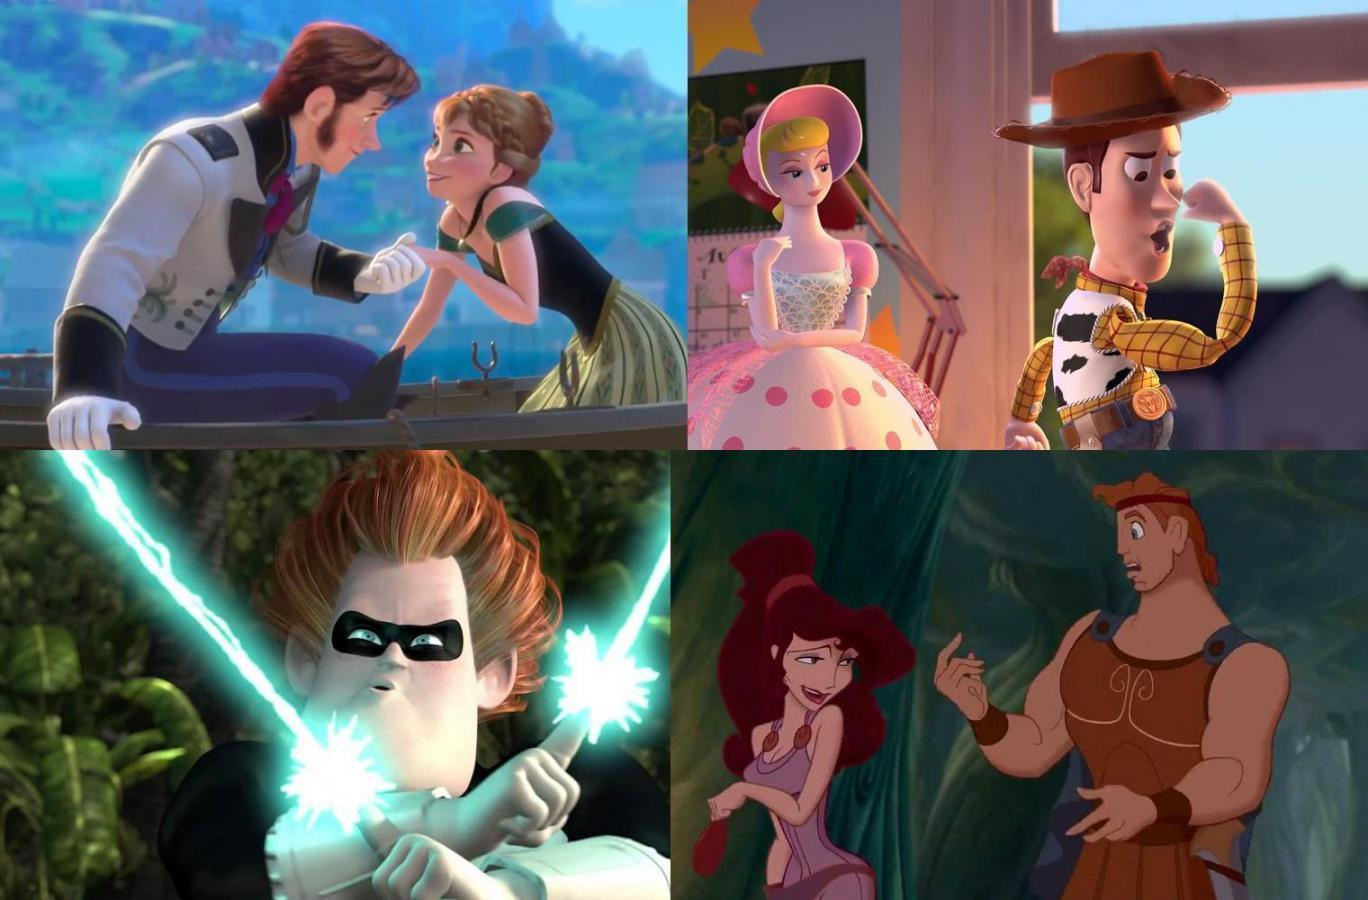 16 surprisingly sexual Disney movie quotes | indy100